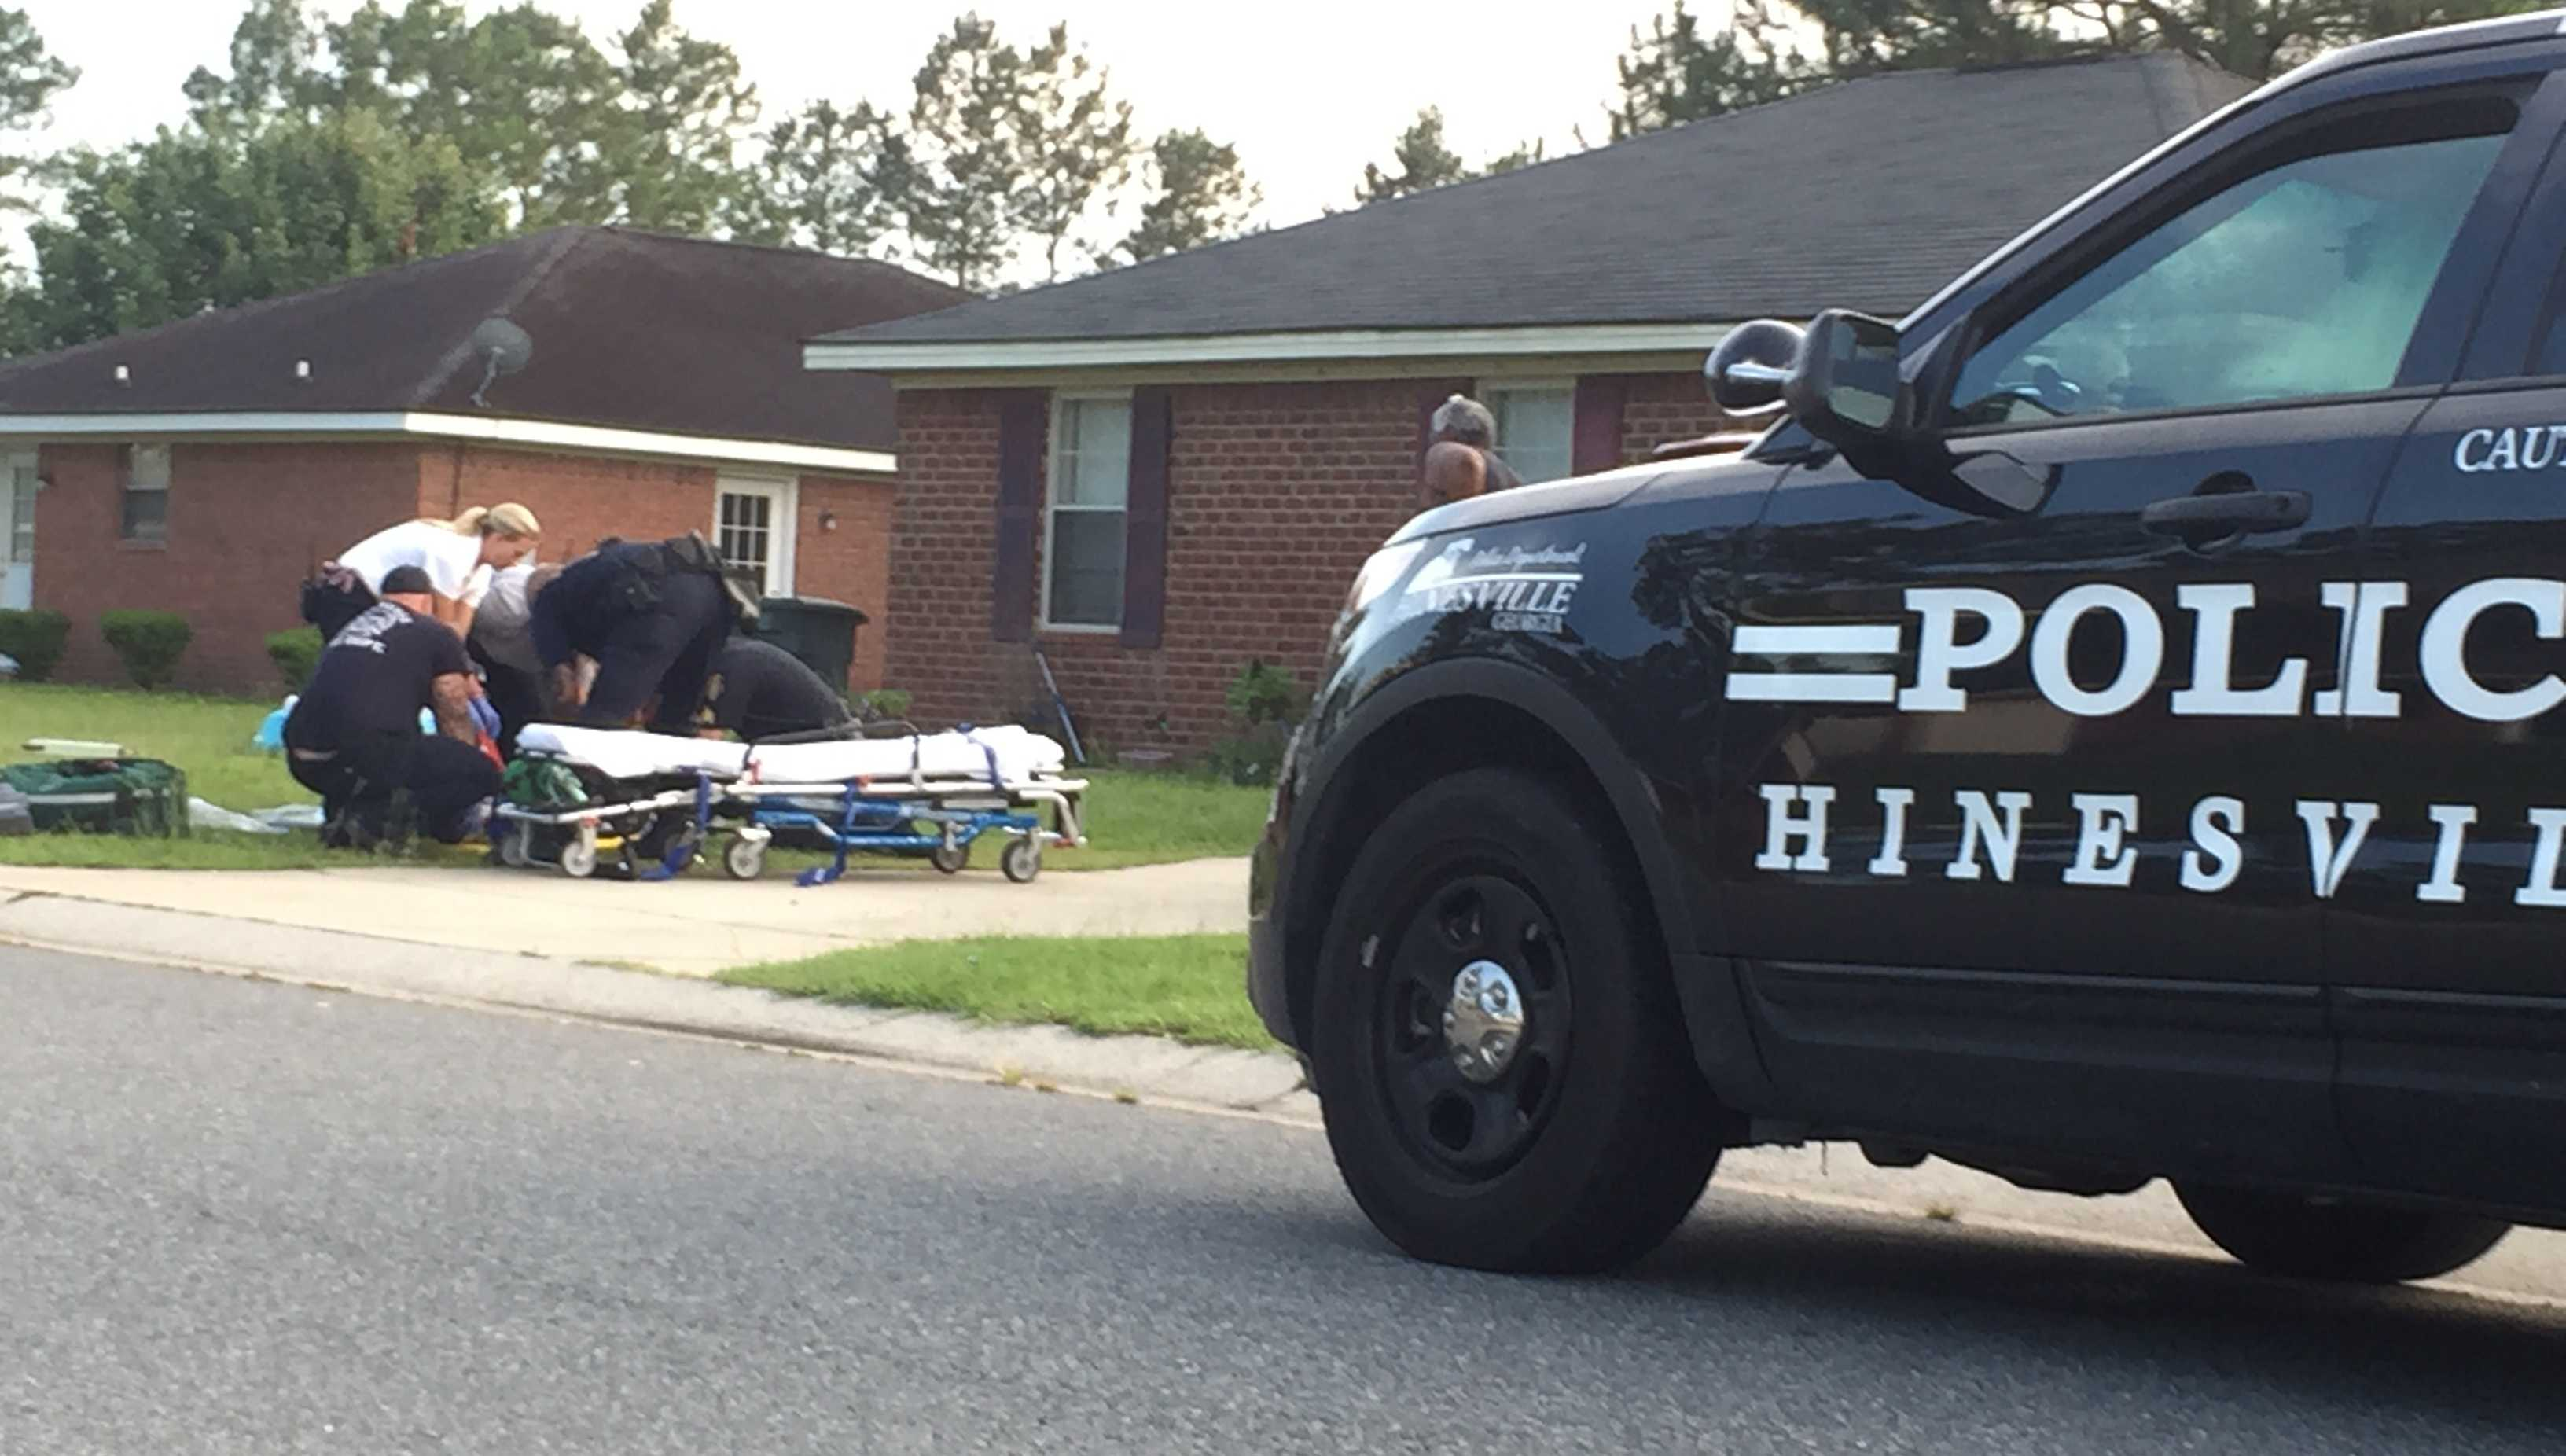 Police in Hinesville were investigating a stabbing at a home on Pineridge Way Wednesday evening.